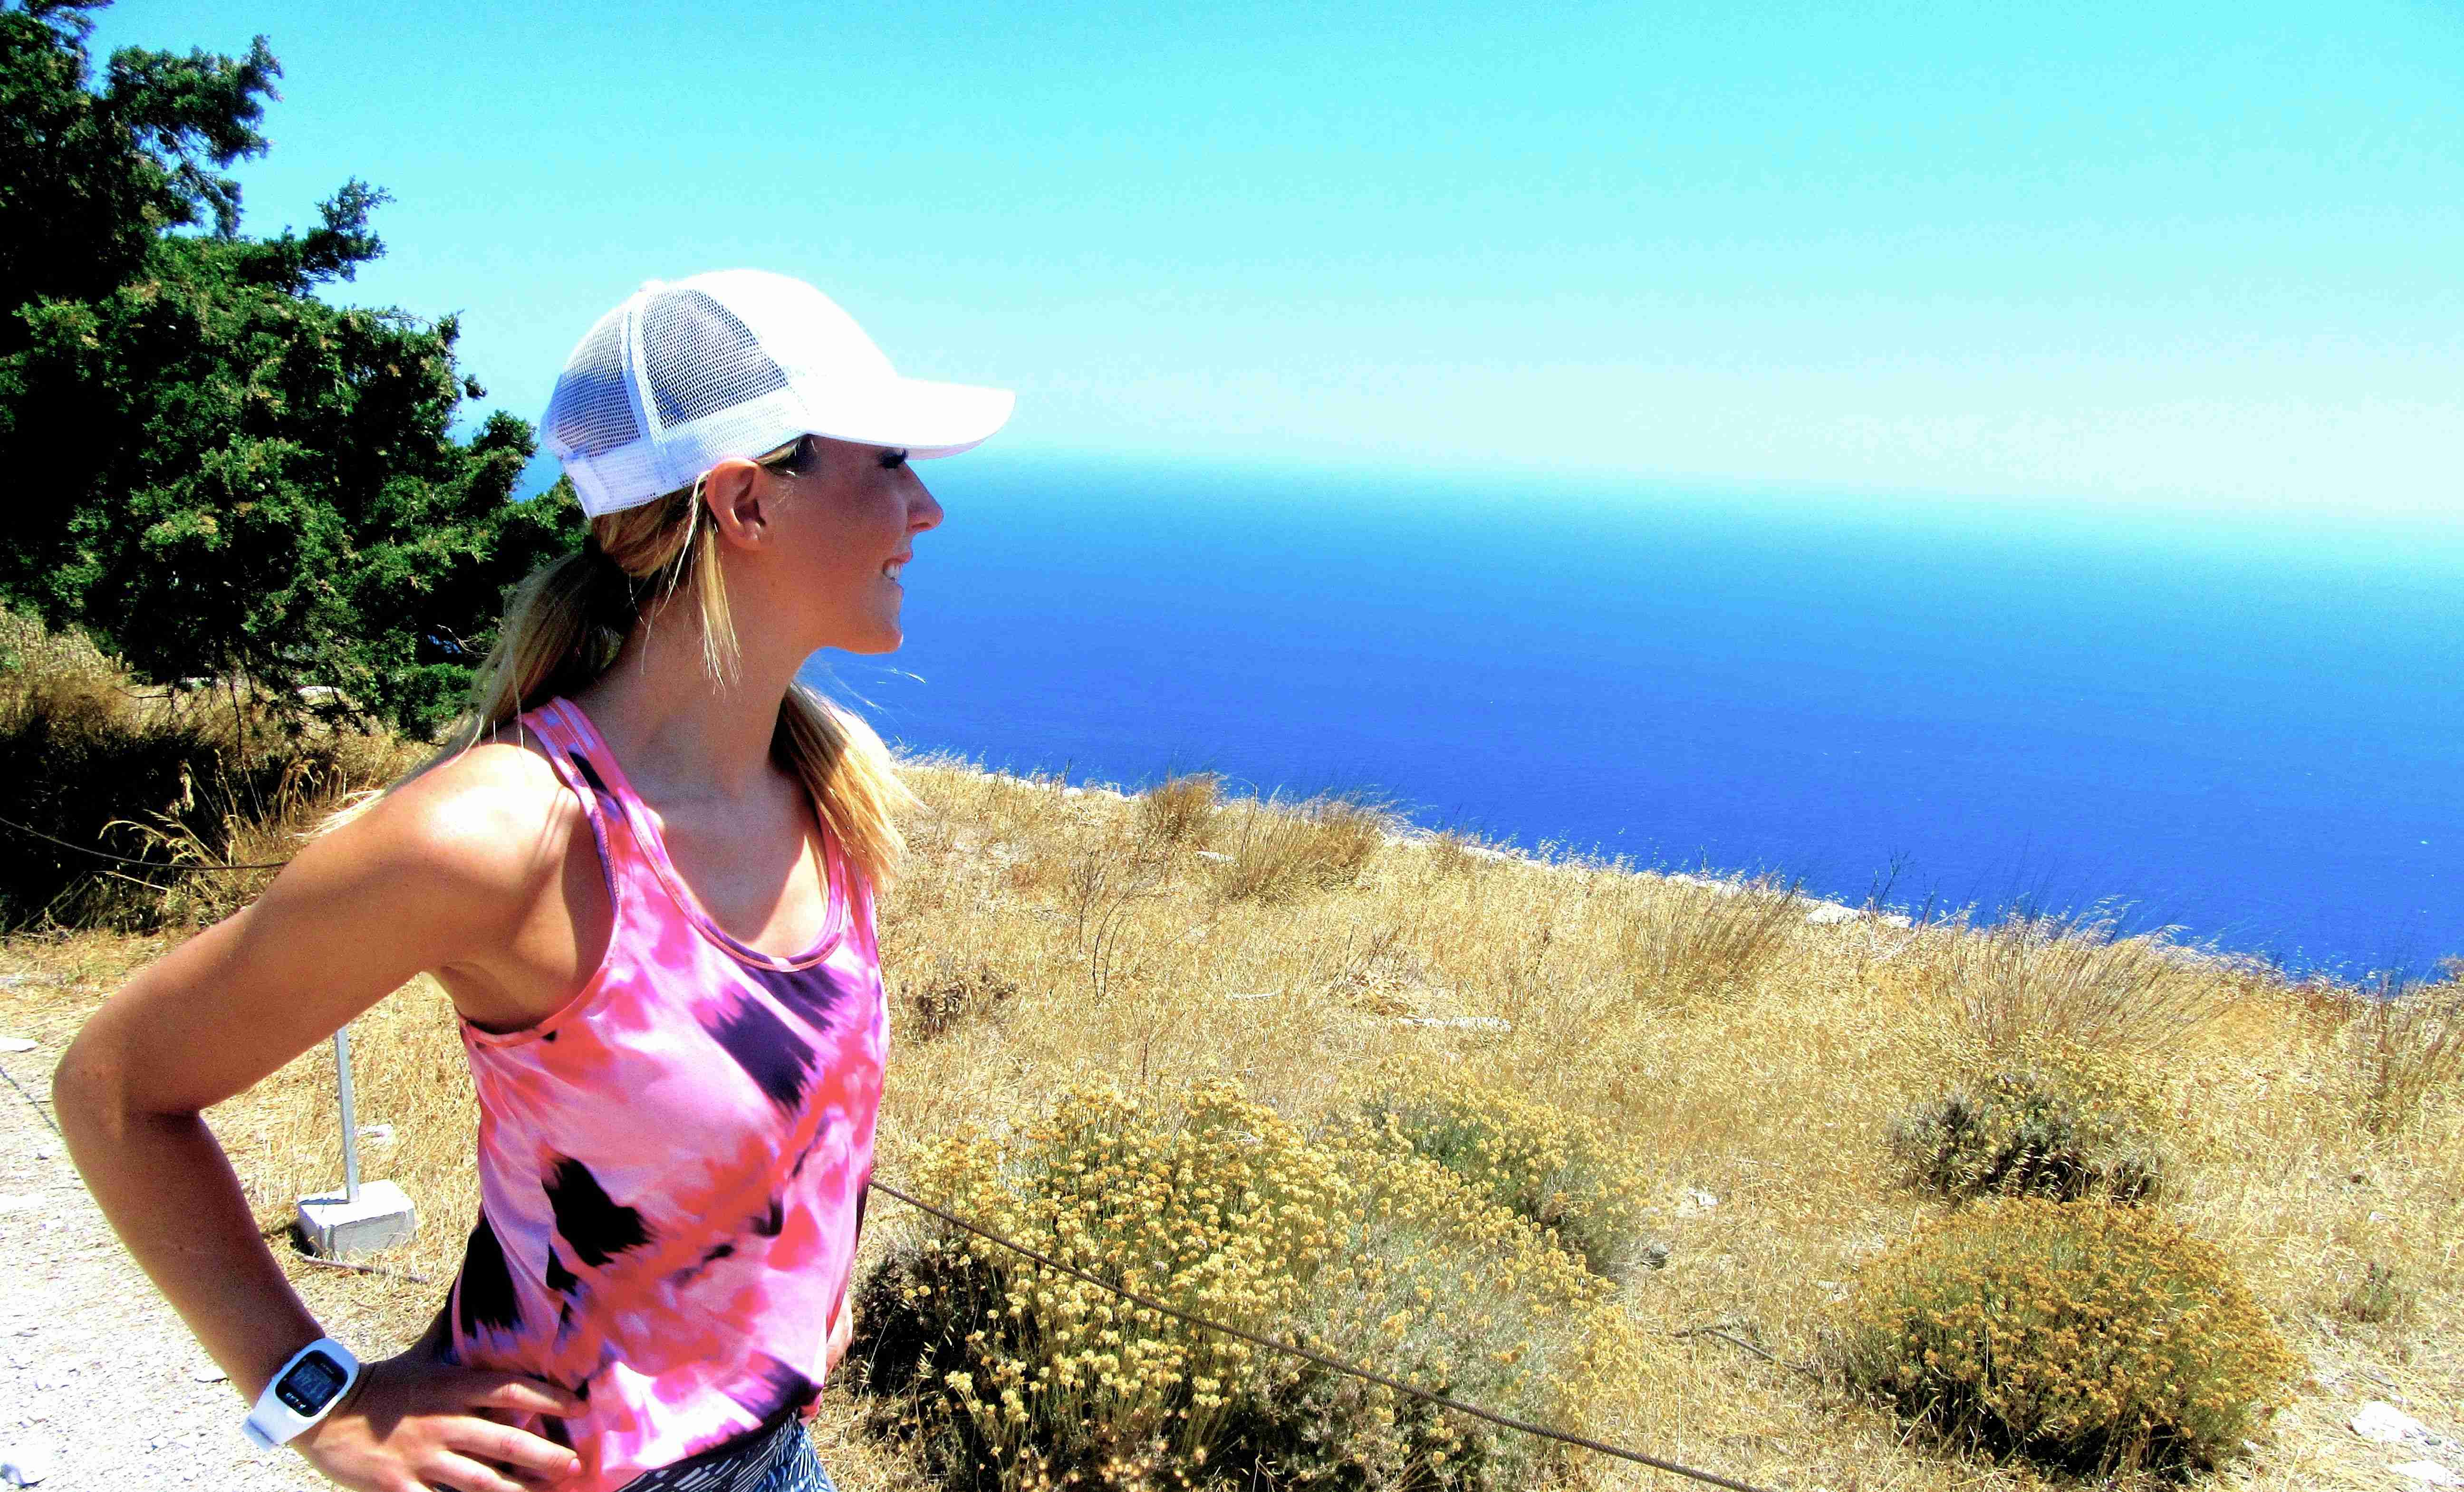 Hiking for fitness